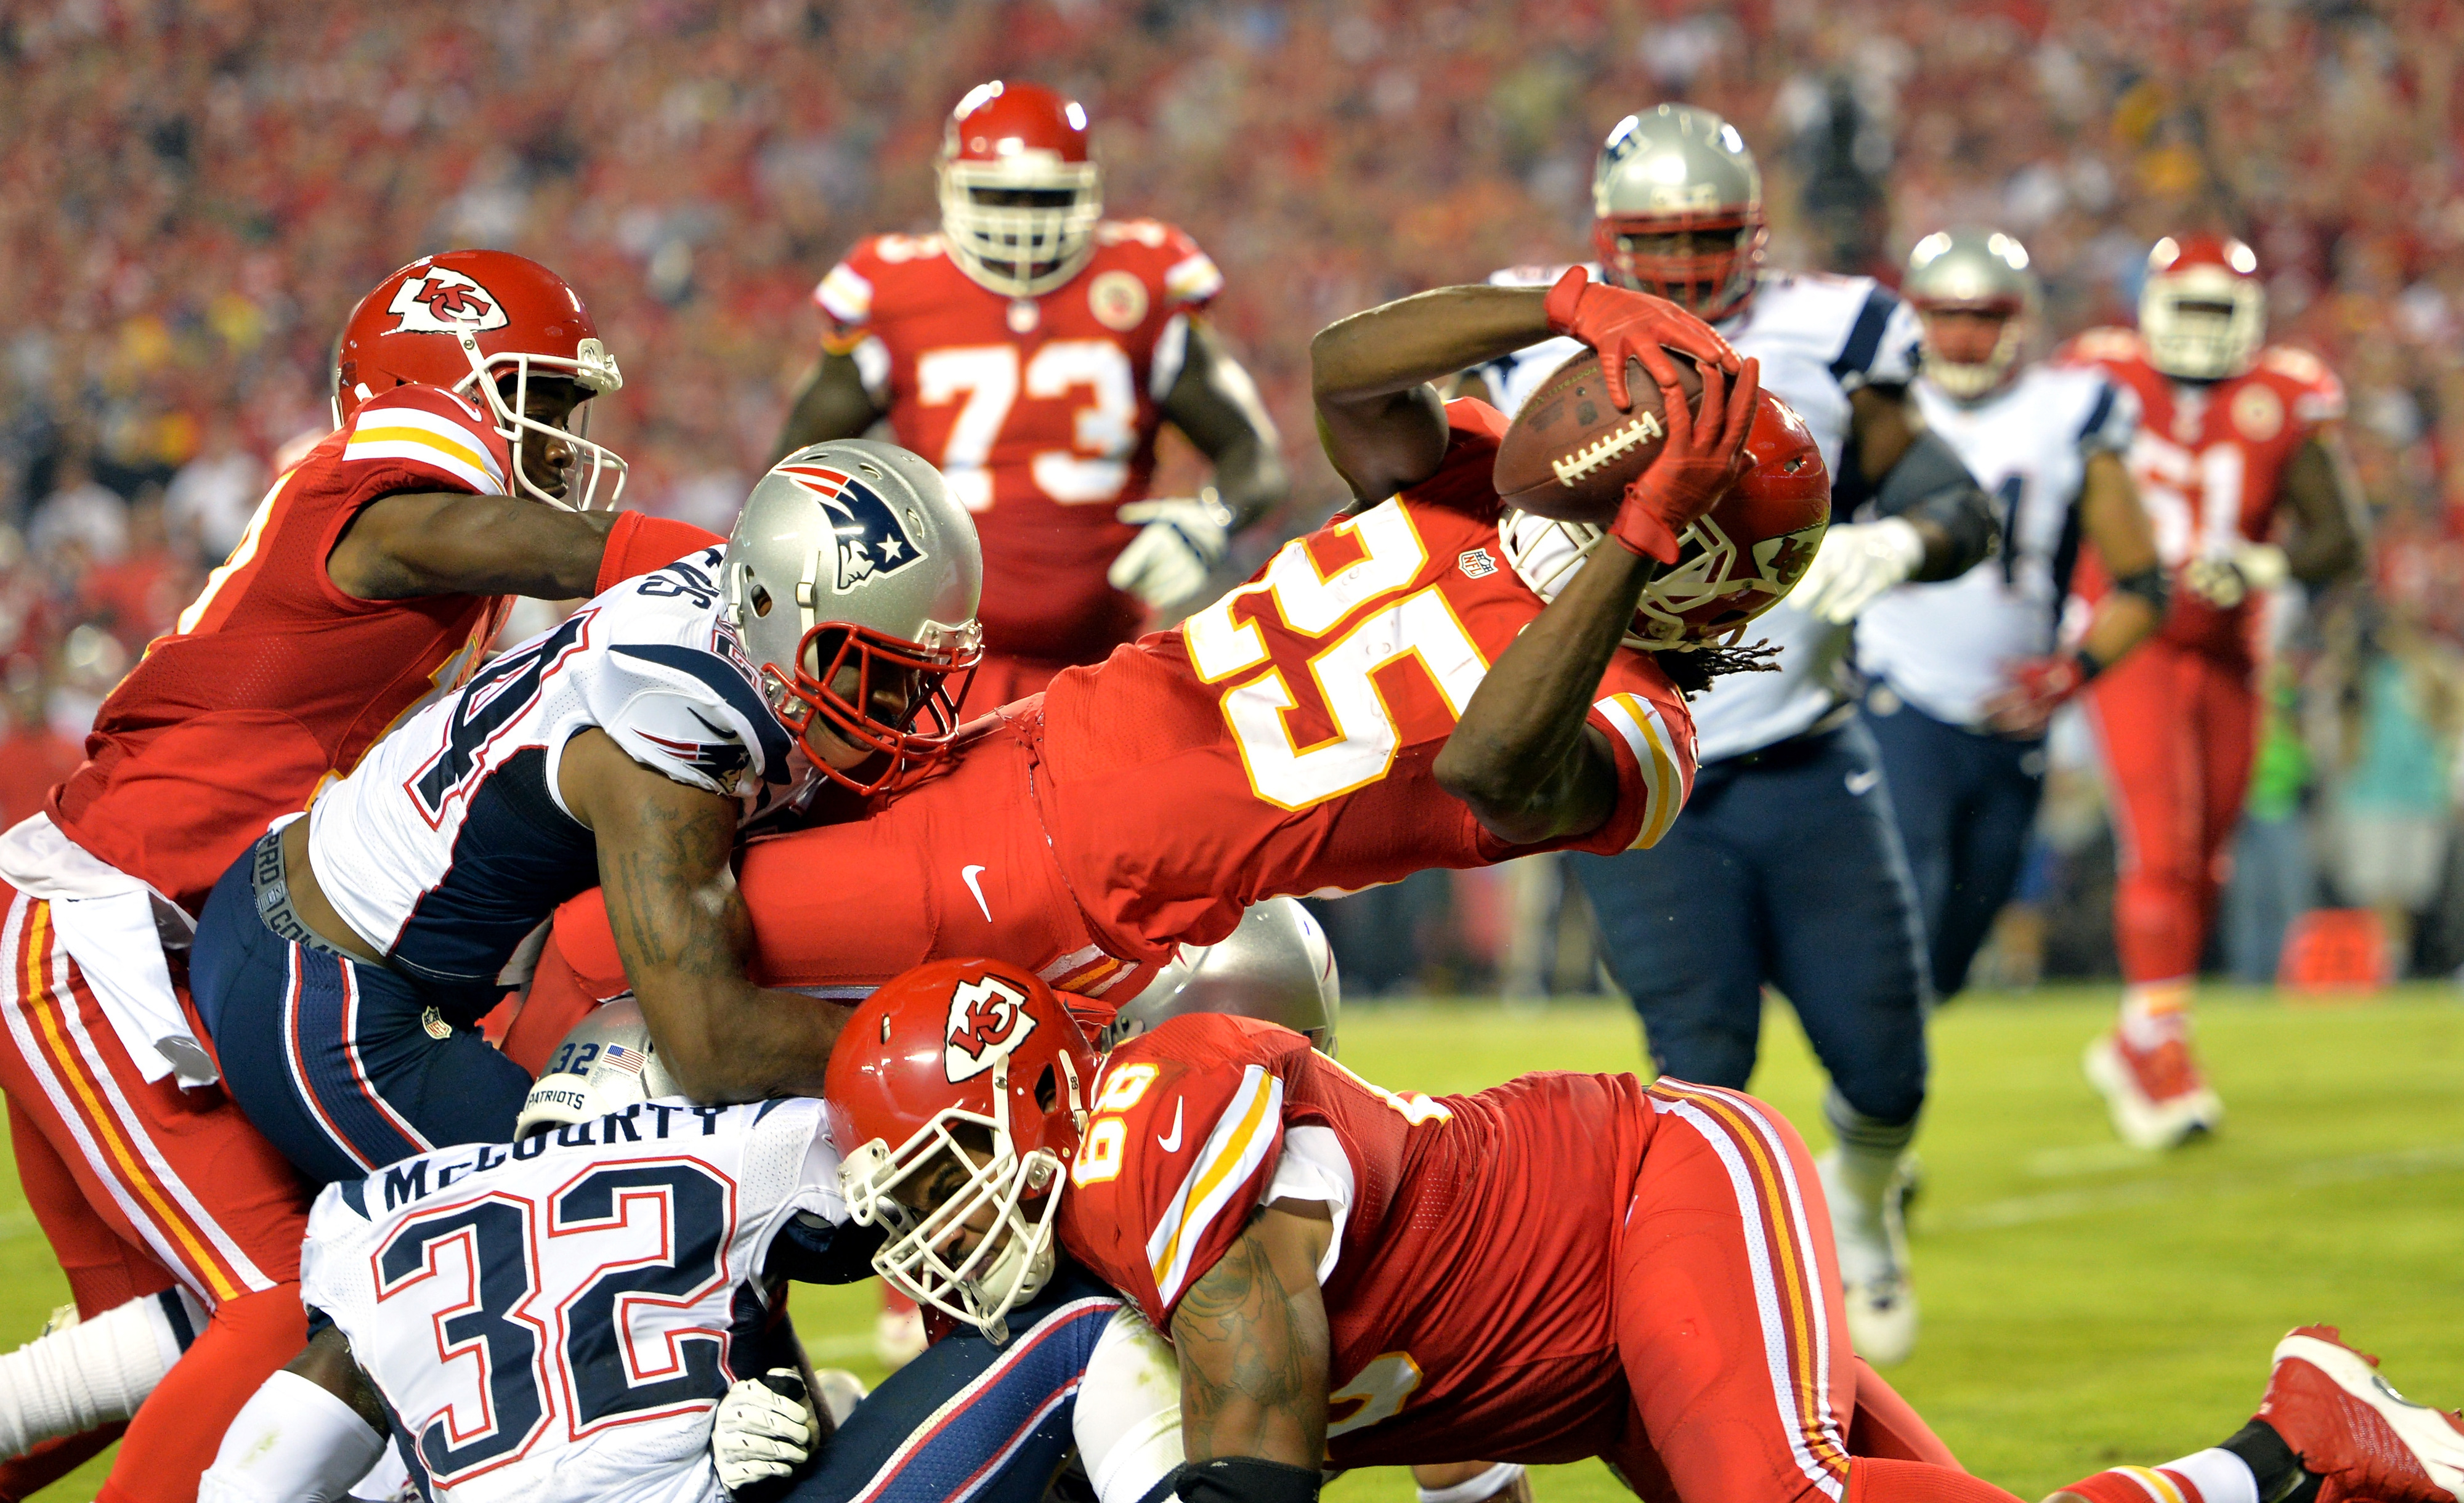 Patriots vs. Chiefs 2014 final score: 3 things we learned in the Kansas City's 41-14 victory